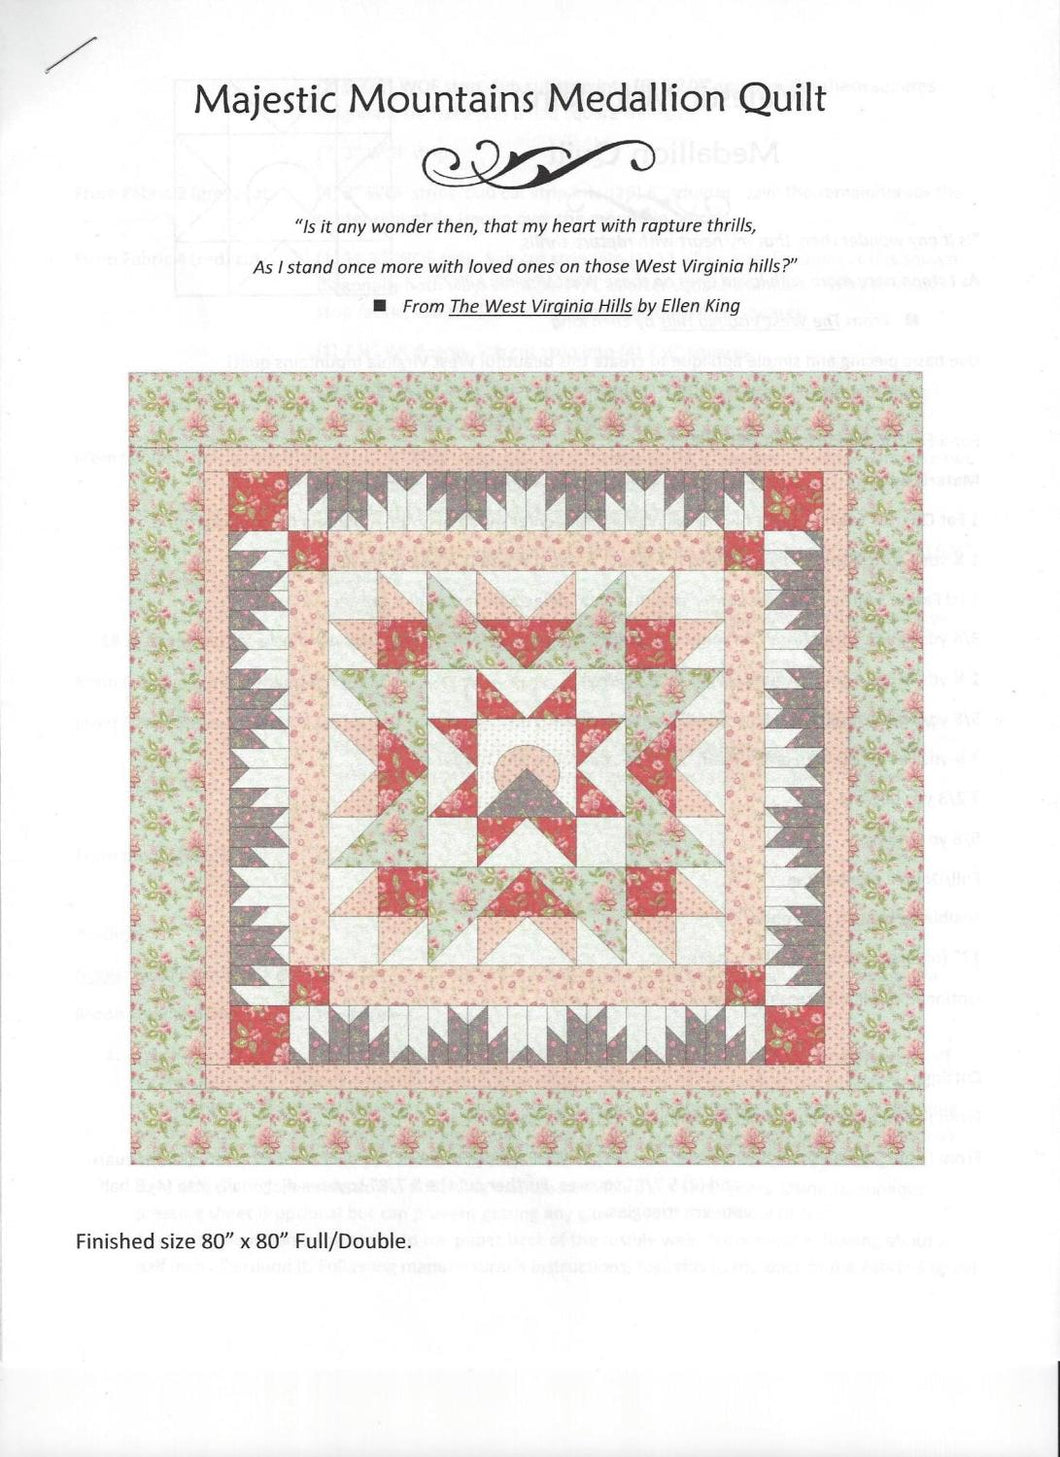 Majestic Mtns. Porcelain Quilt Kit - The Sewing Gallery